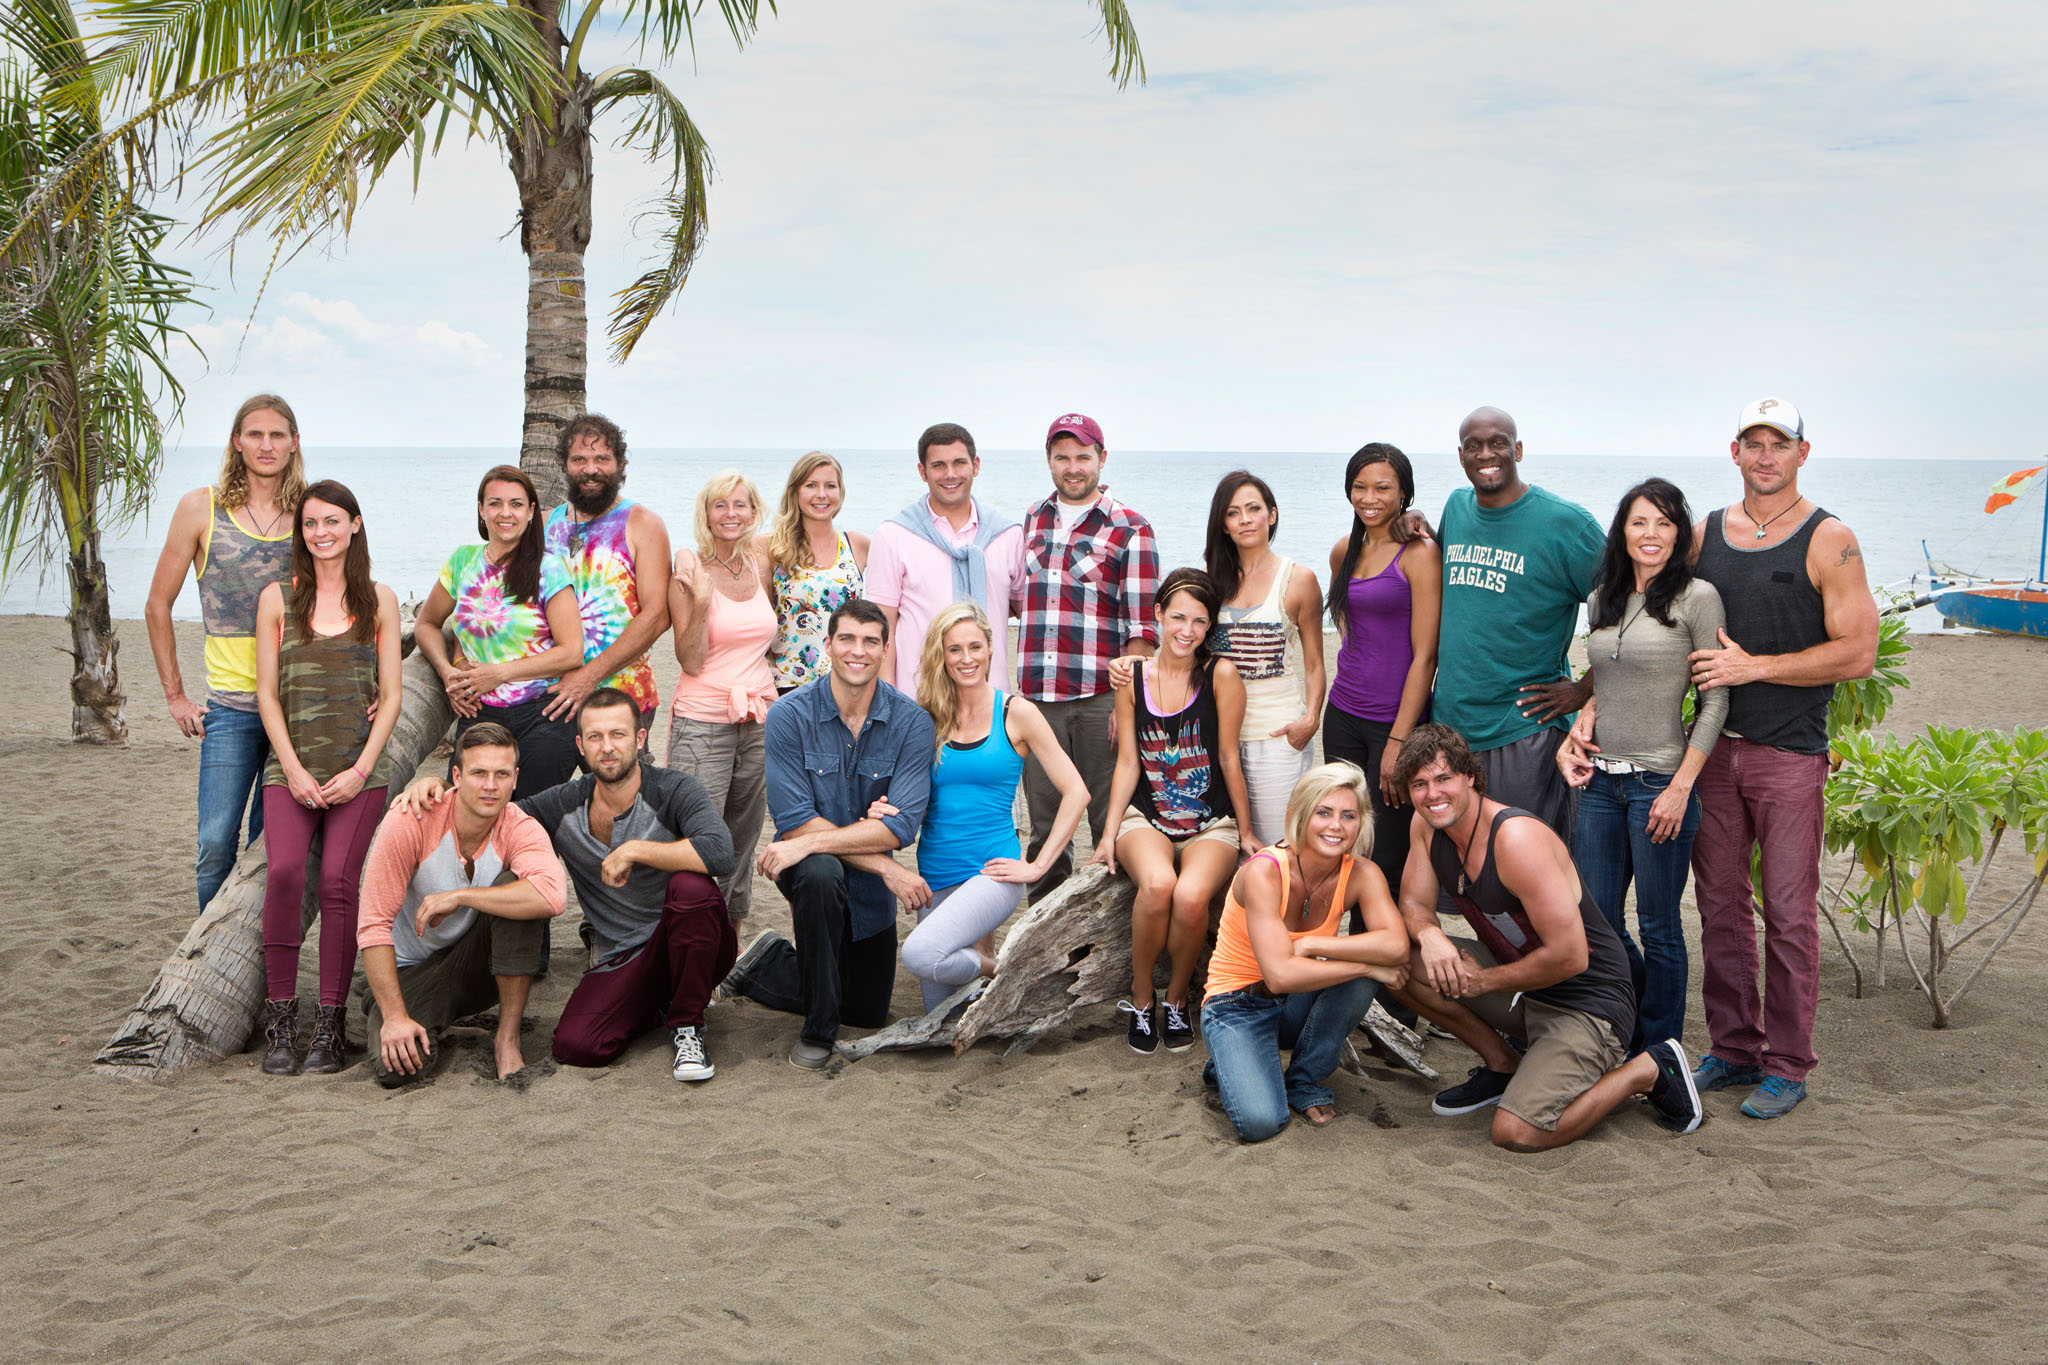 'Survivor: Blood vs. Water' Premiere Recap: What's Love Got to Do With It?